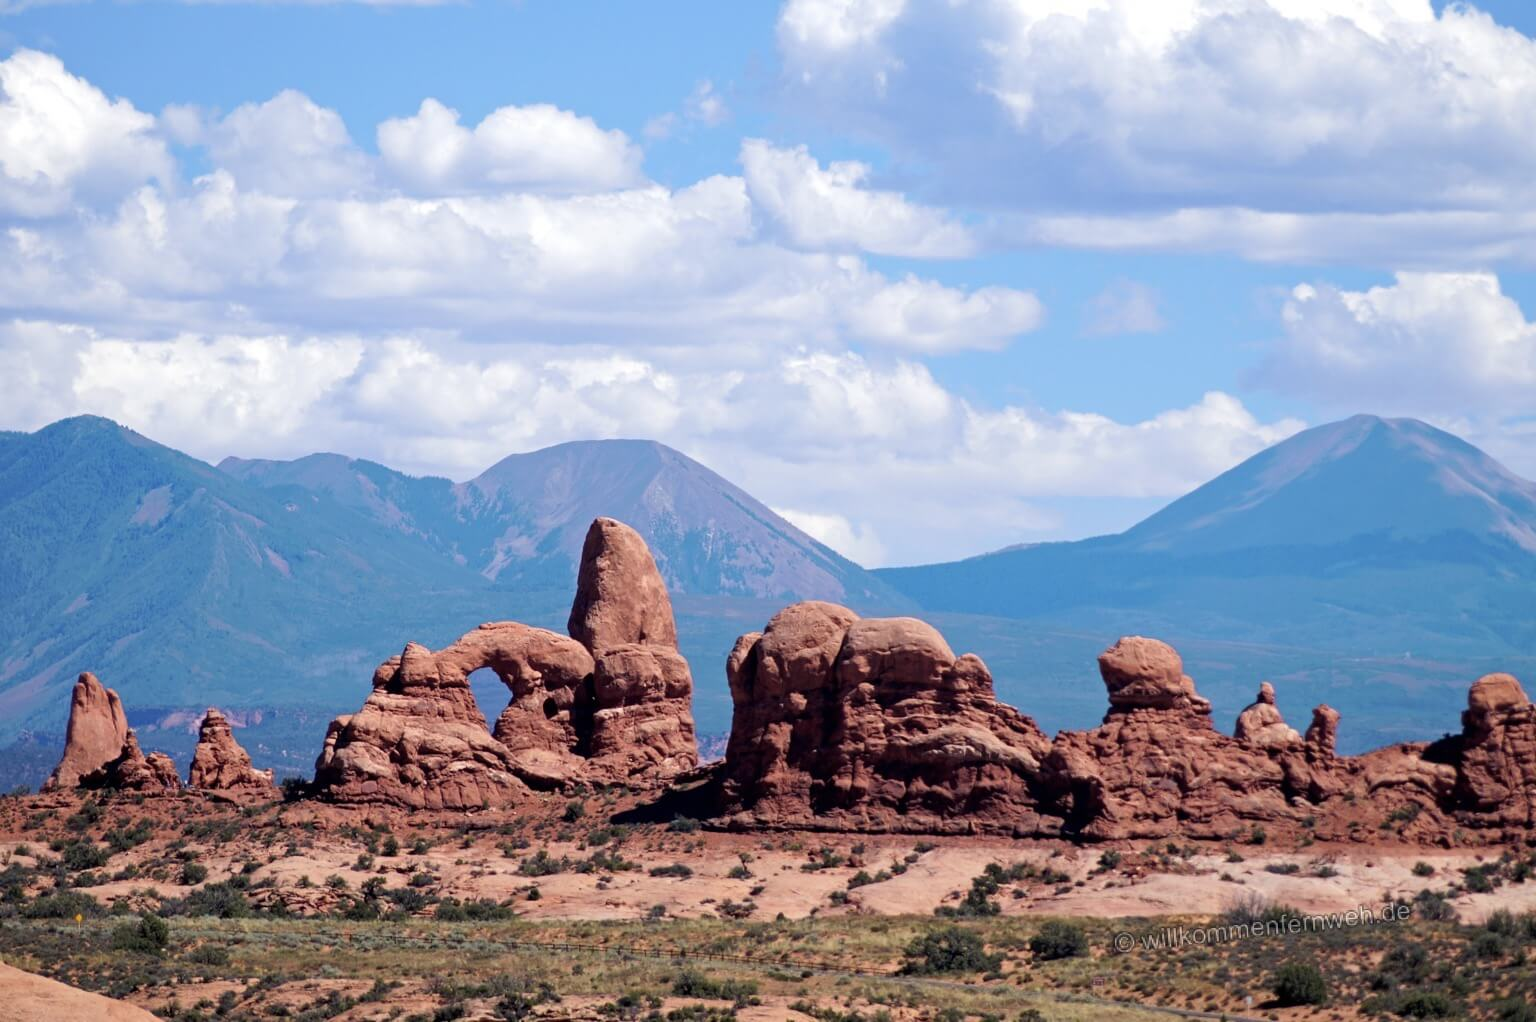 Turret Arch, dahinter die La Sal Mountains